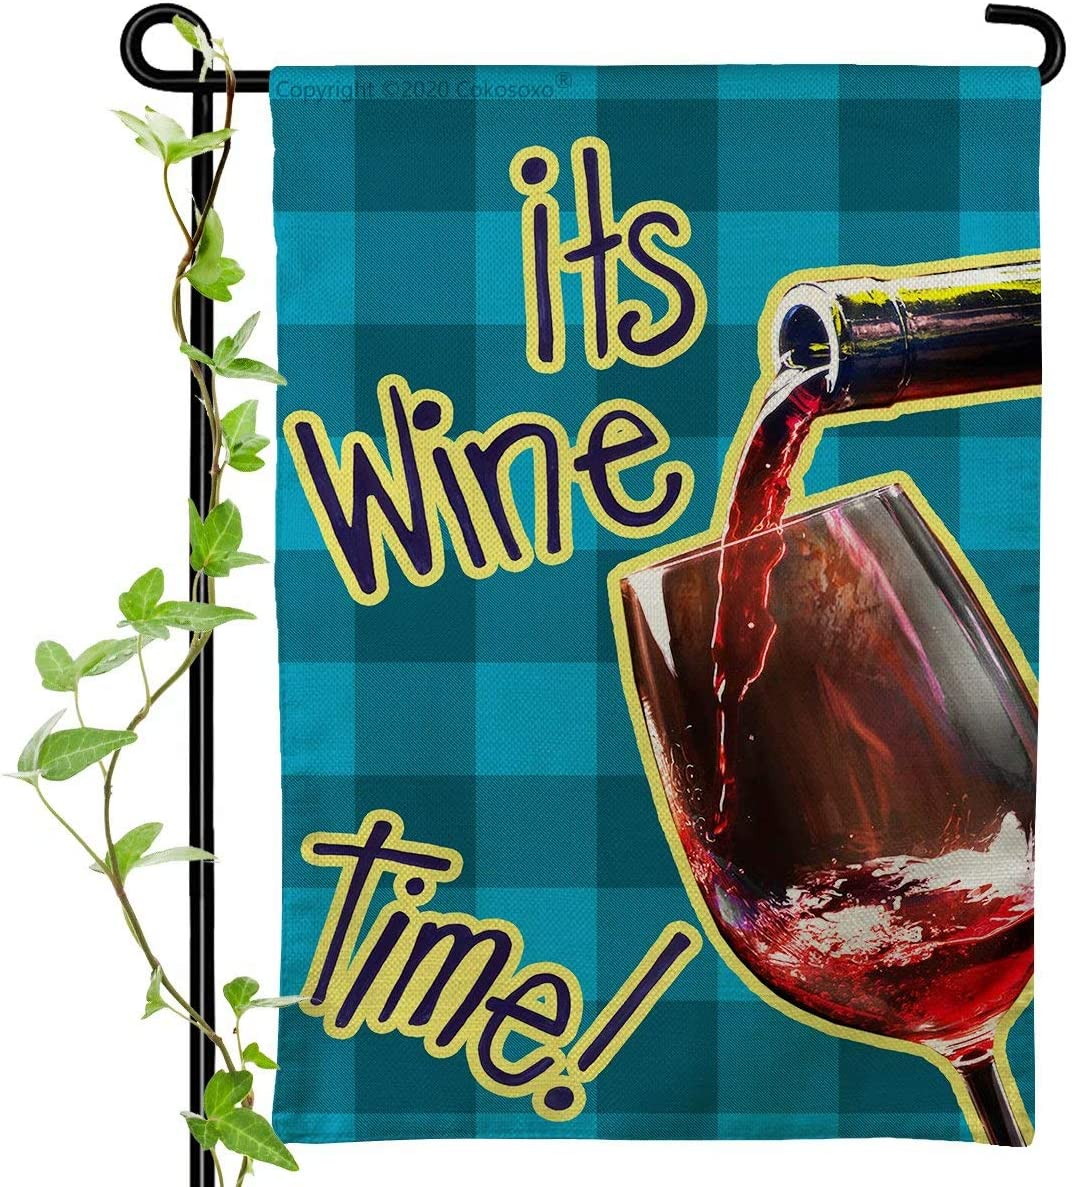 Cokosoxo It's Wine Time Garden Flag-Happy Party Wine Glasses and Red Wine Bottle - Burlap Vertical Double Sided Blue Greay Buffalo Plaid Outdoor Decor for Yard Lawn 12x18 inch